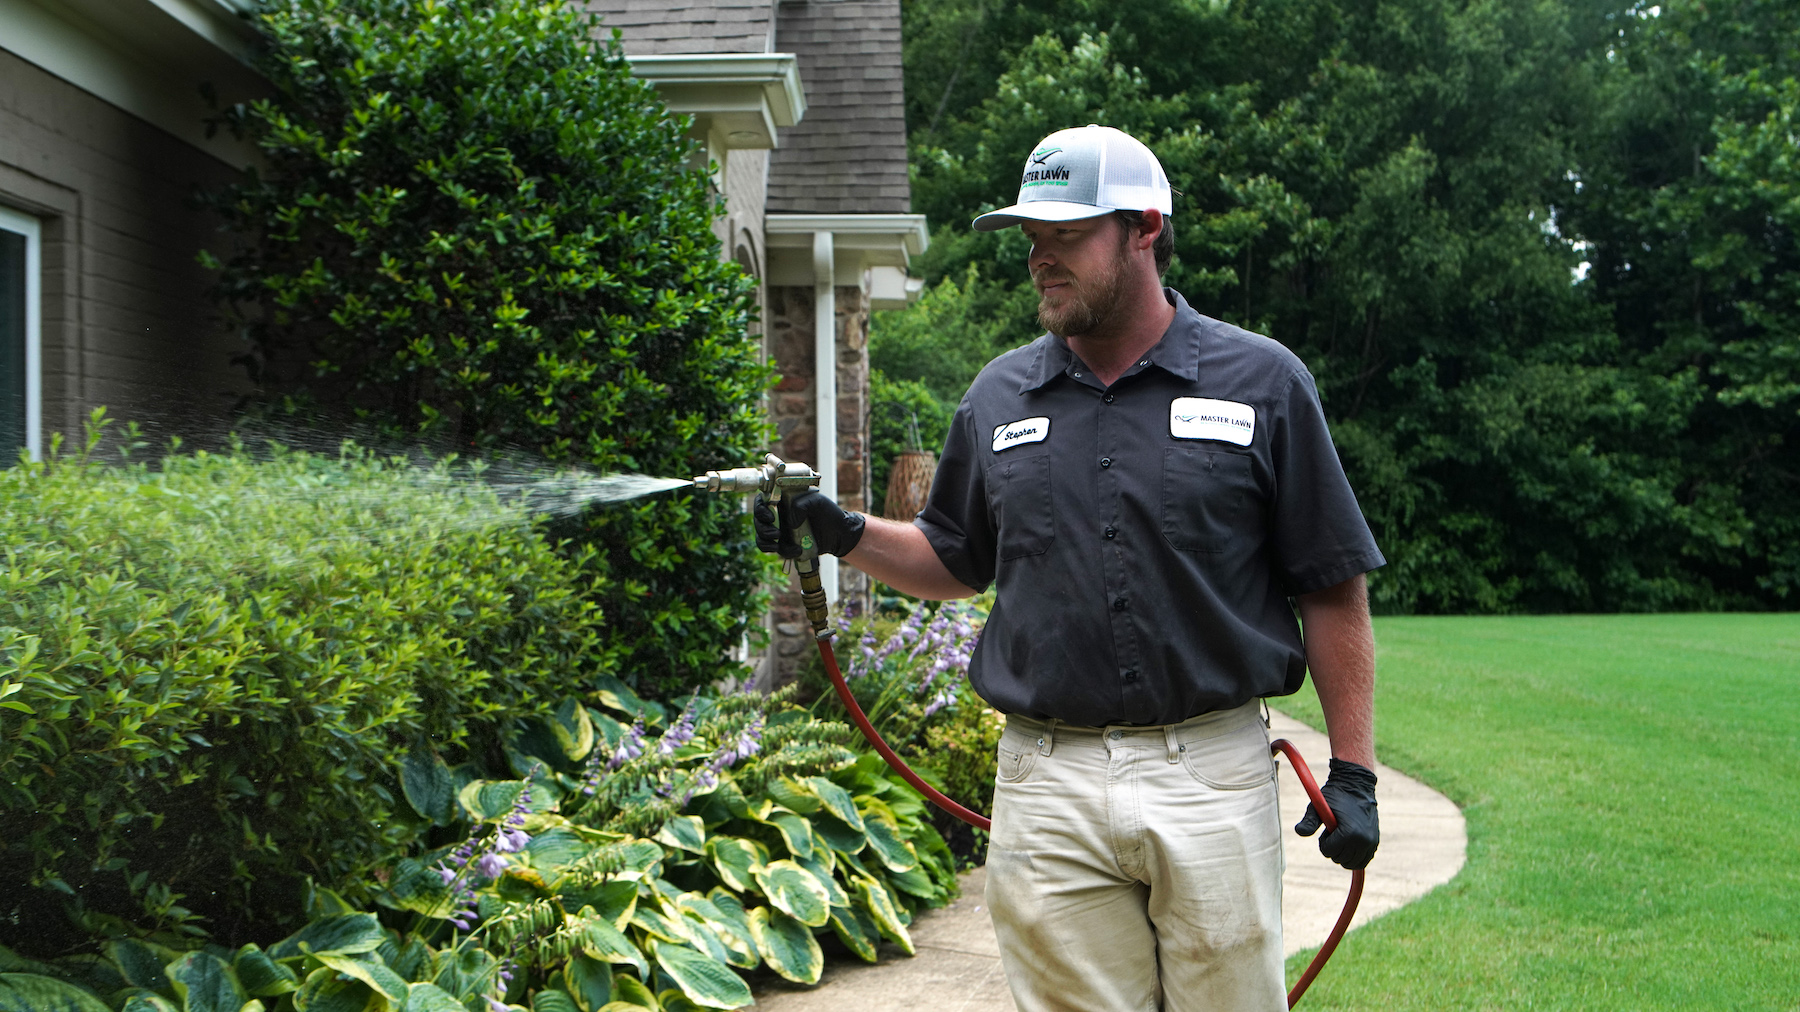 Plant health care technician taking care of shrubs and trees